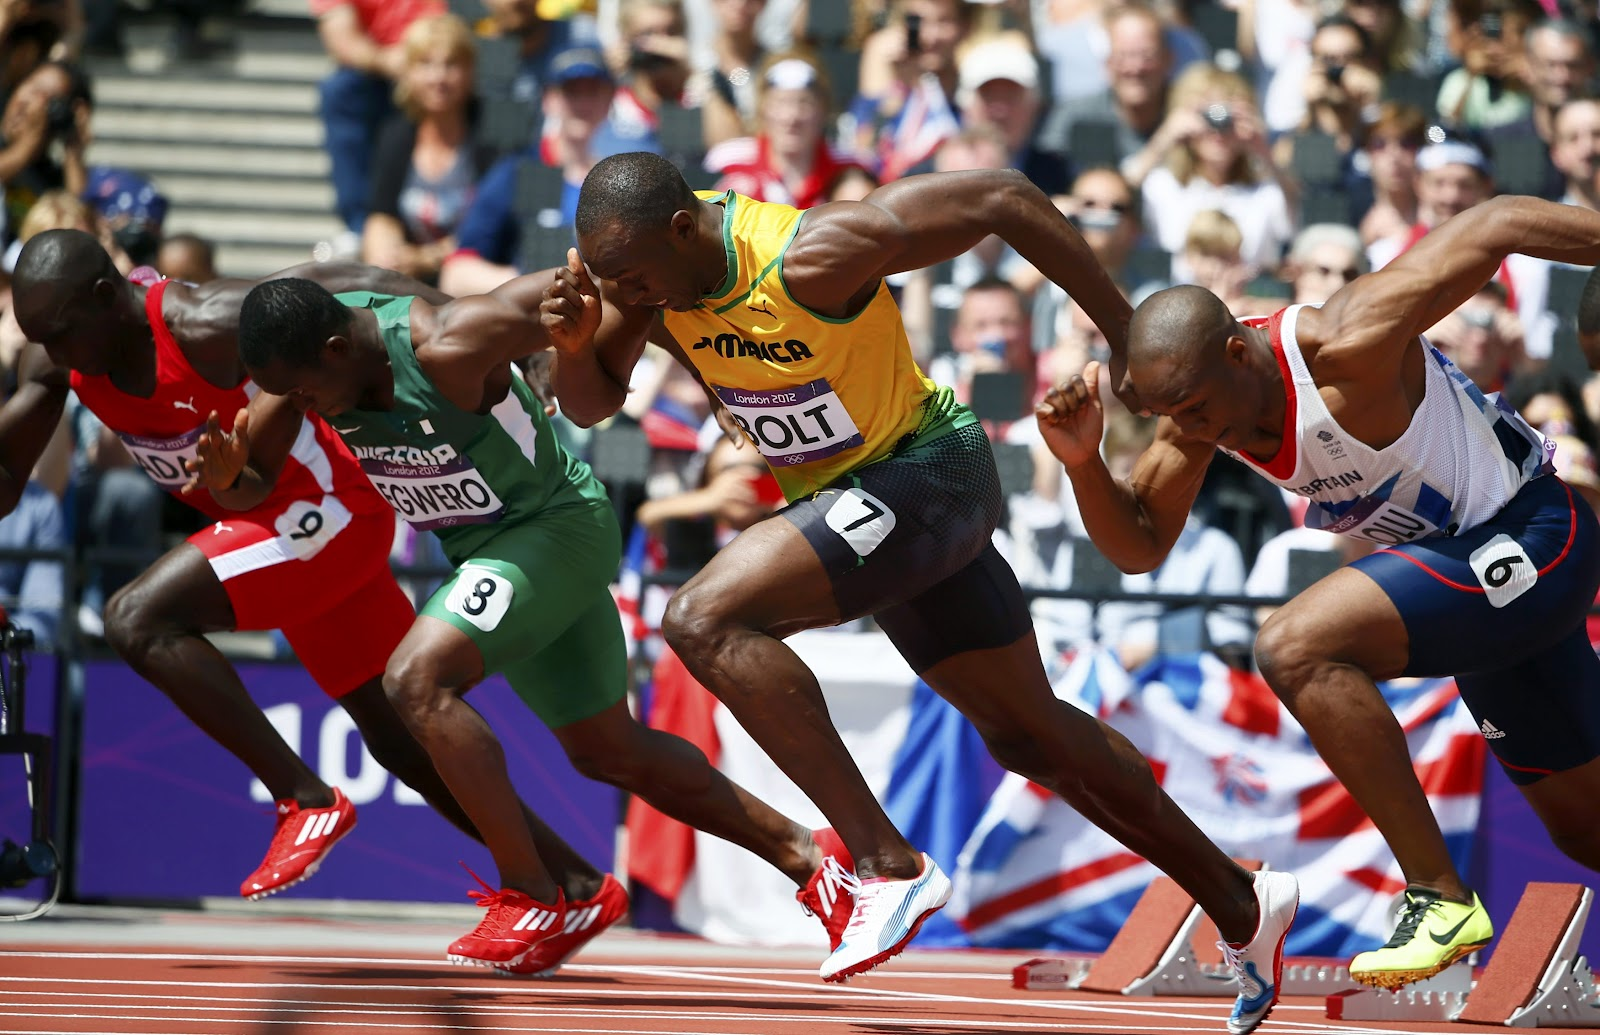 Bolt Date Of Birth 21 August 1986